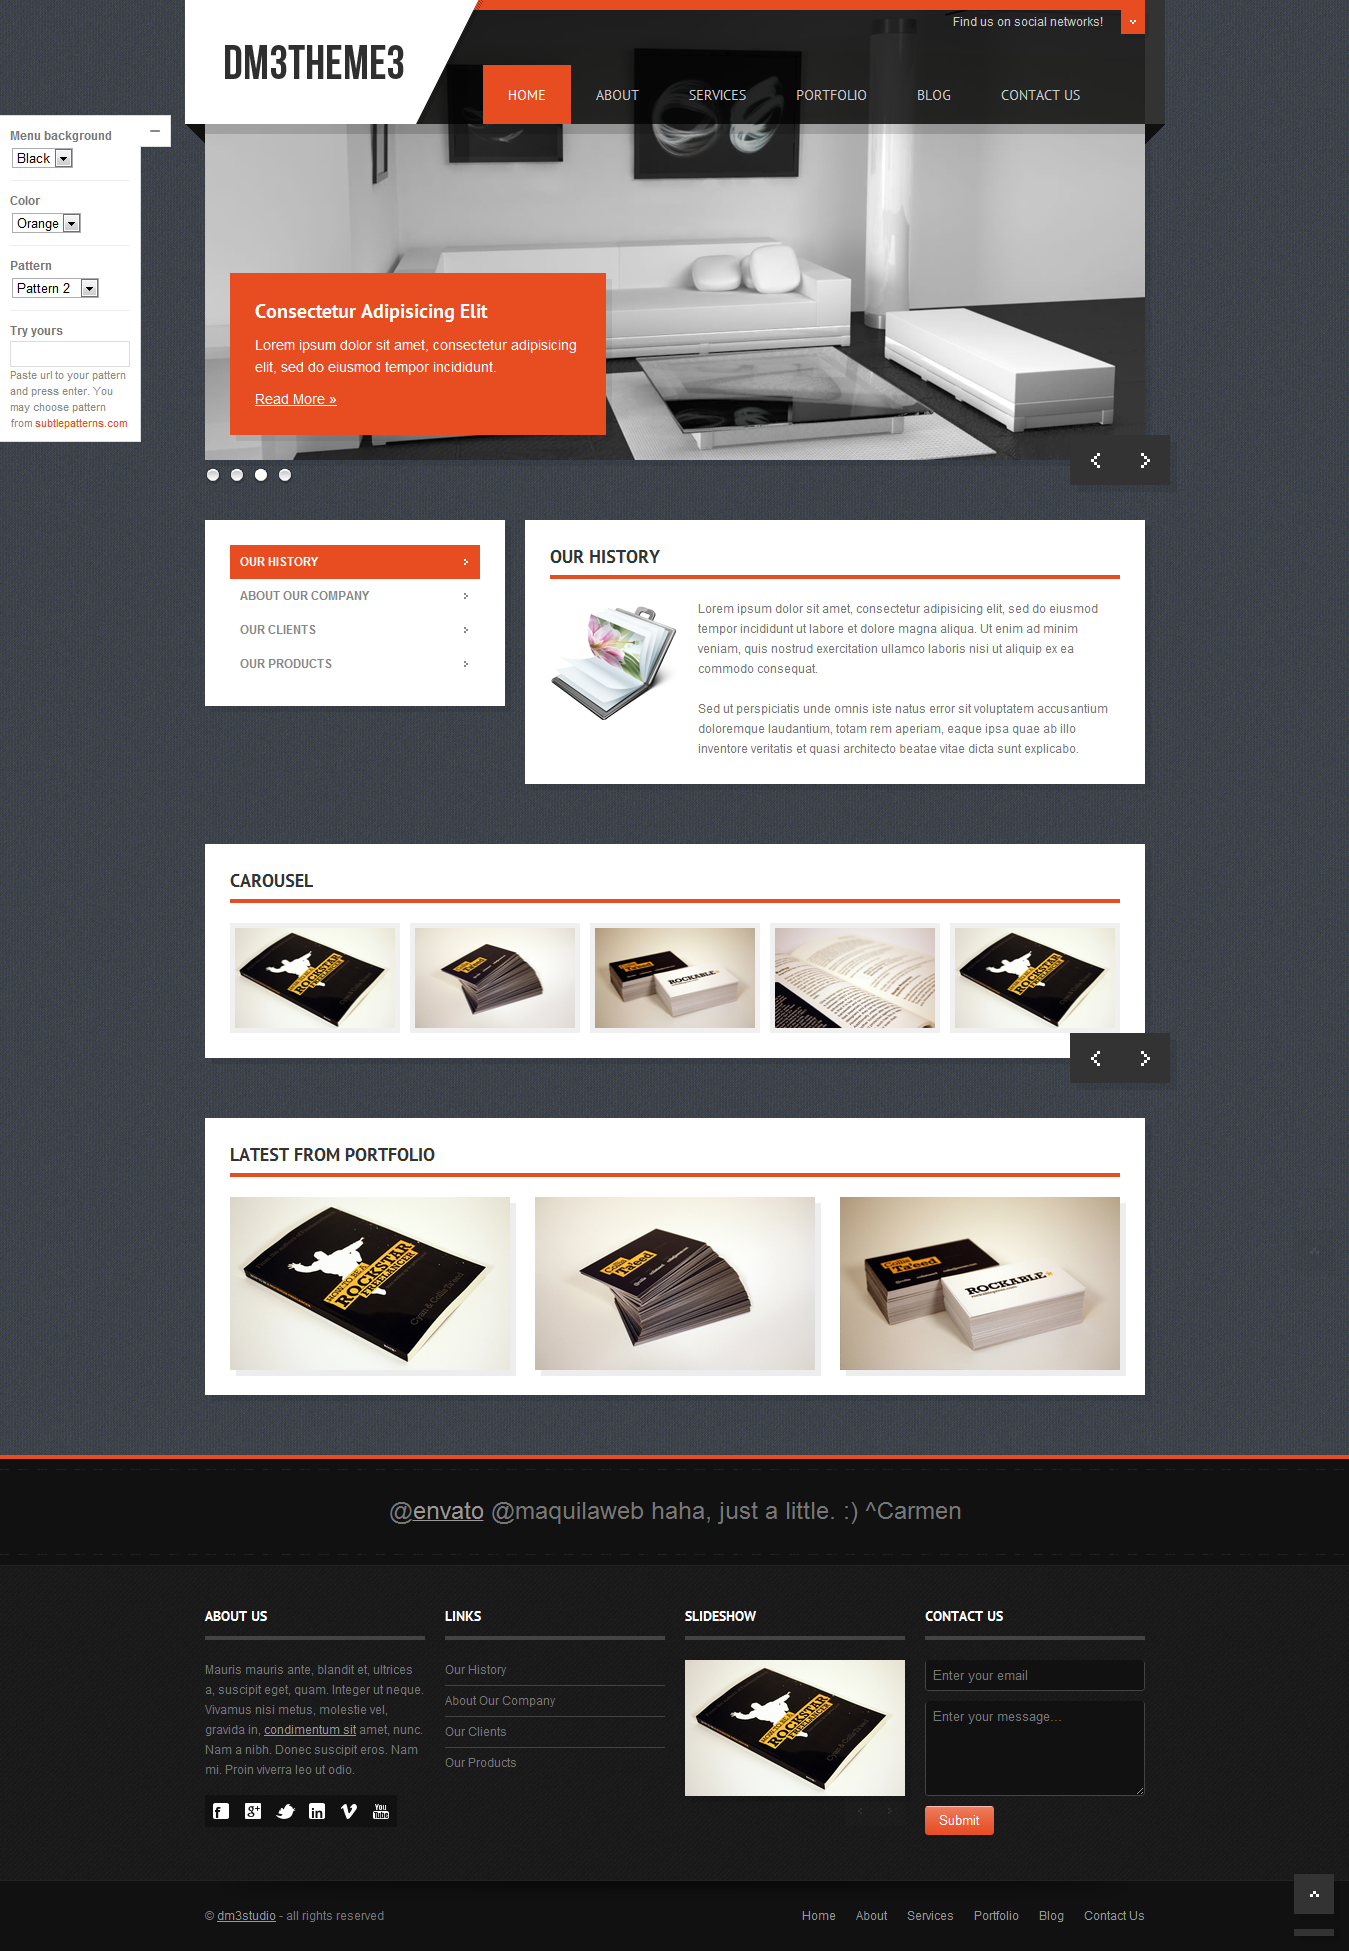 Dm3theme3 - Responsive Business Template